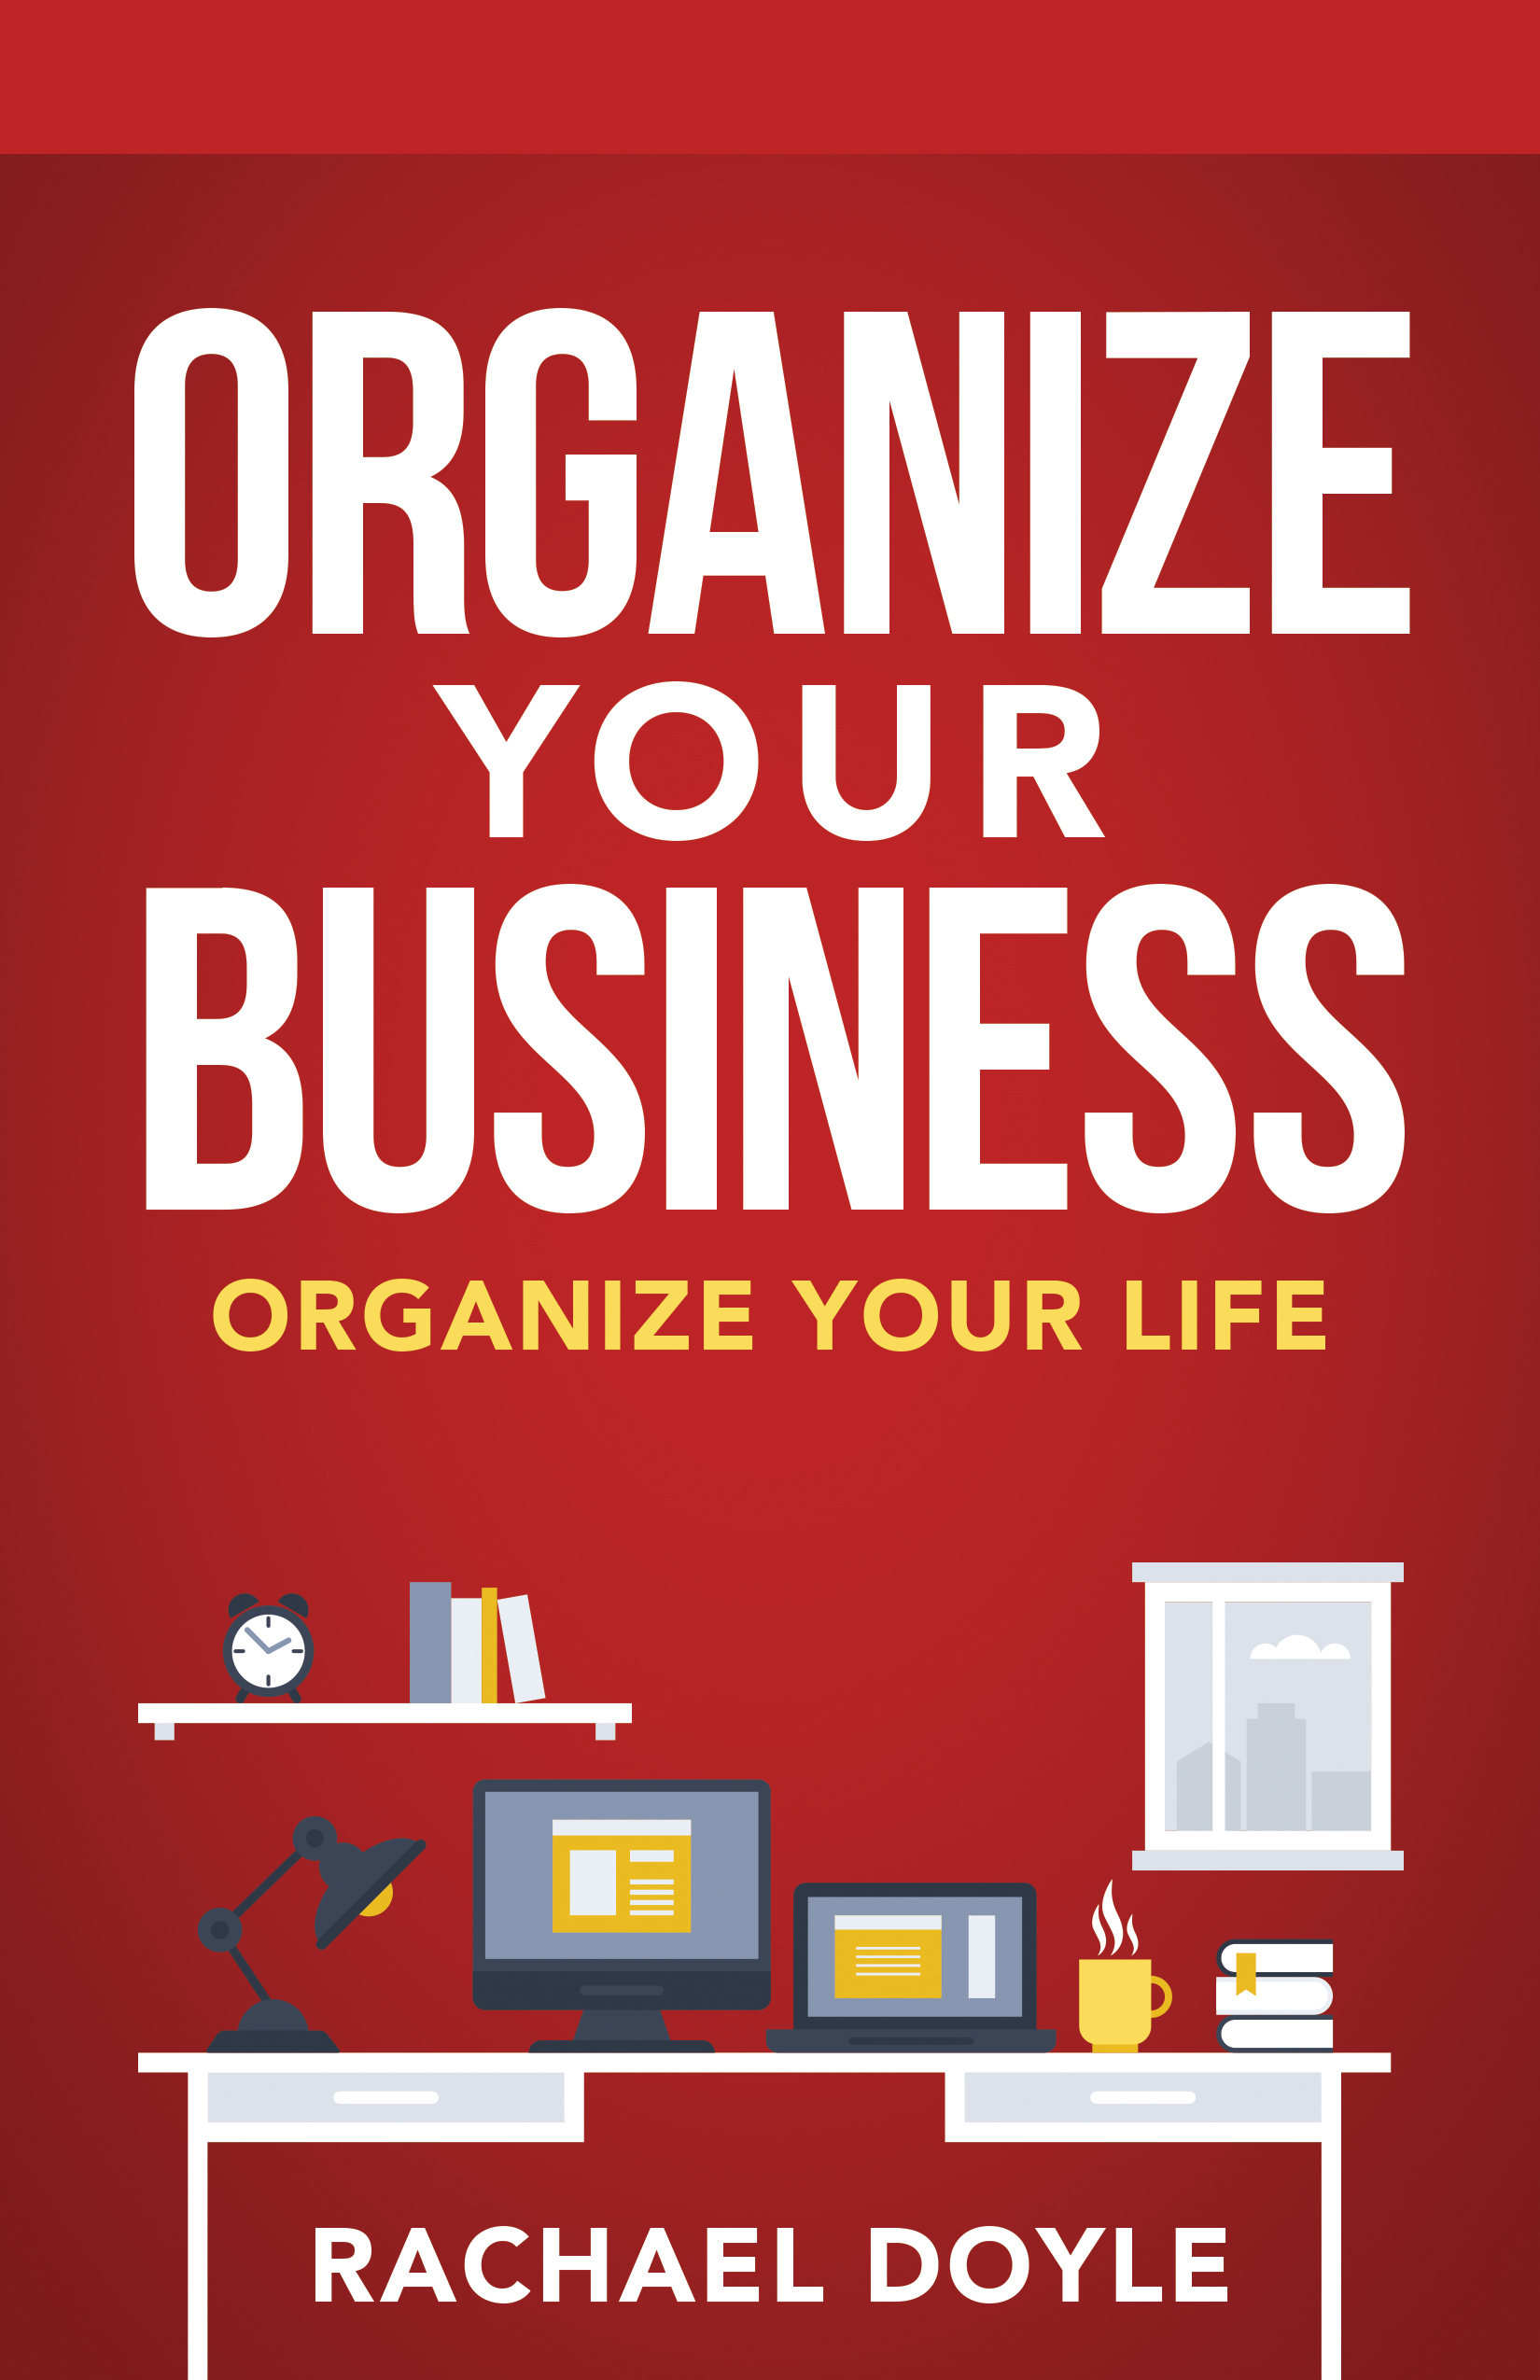 Organize Your Business - Rachael Doyle